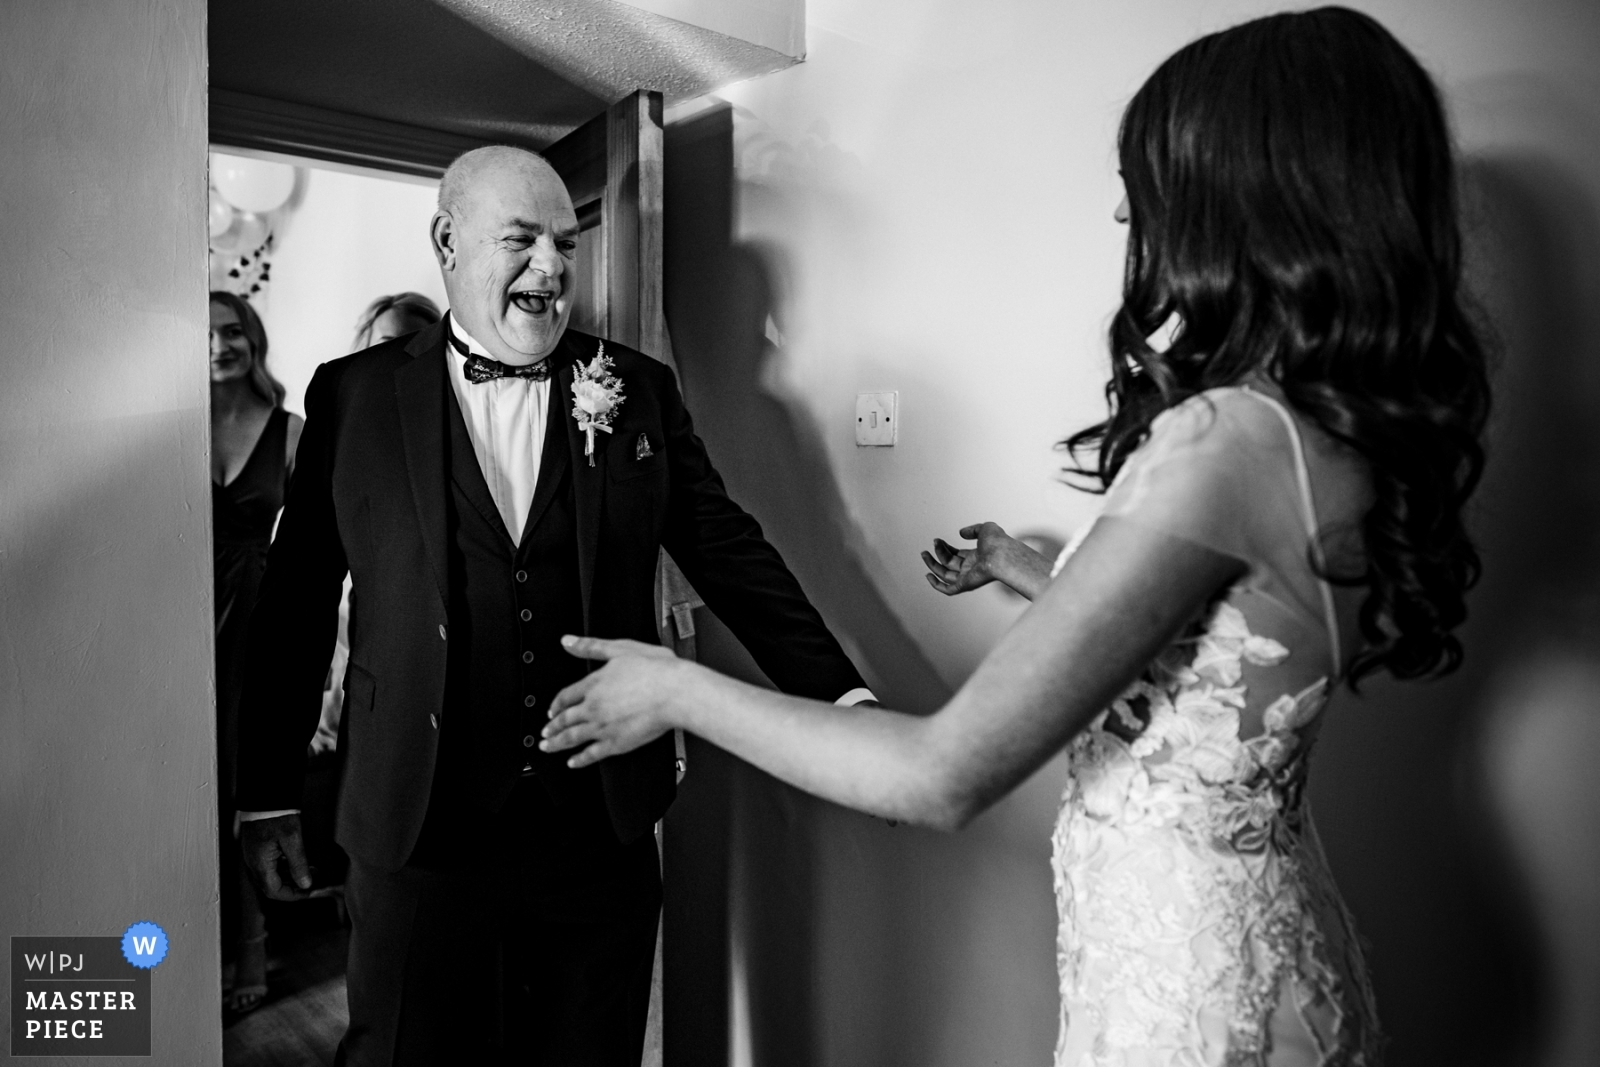 Godfather sees bride for the first time when he arrives to walk her down the aisle - Dublin, Leinster Wedding Photography -  | Kildare, Ireland